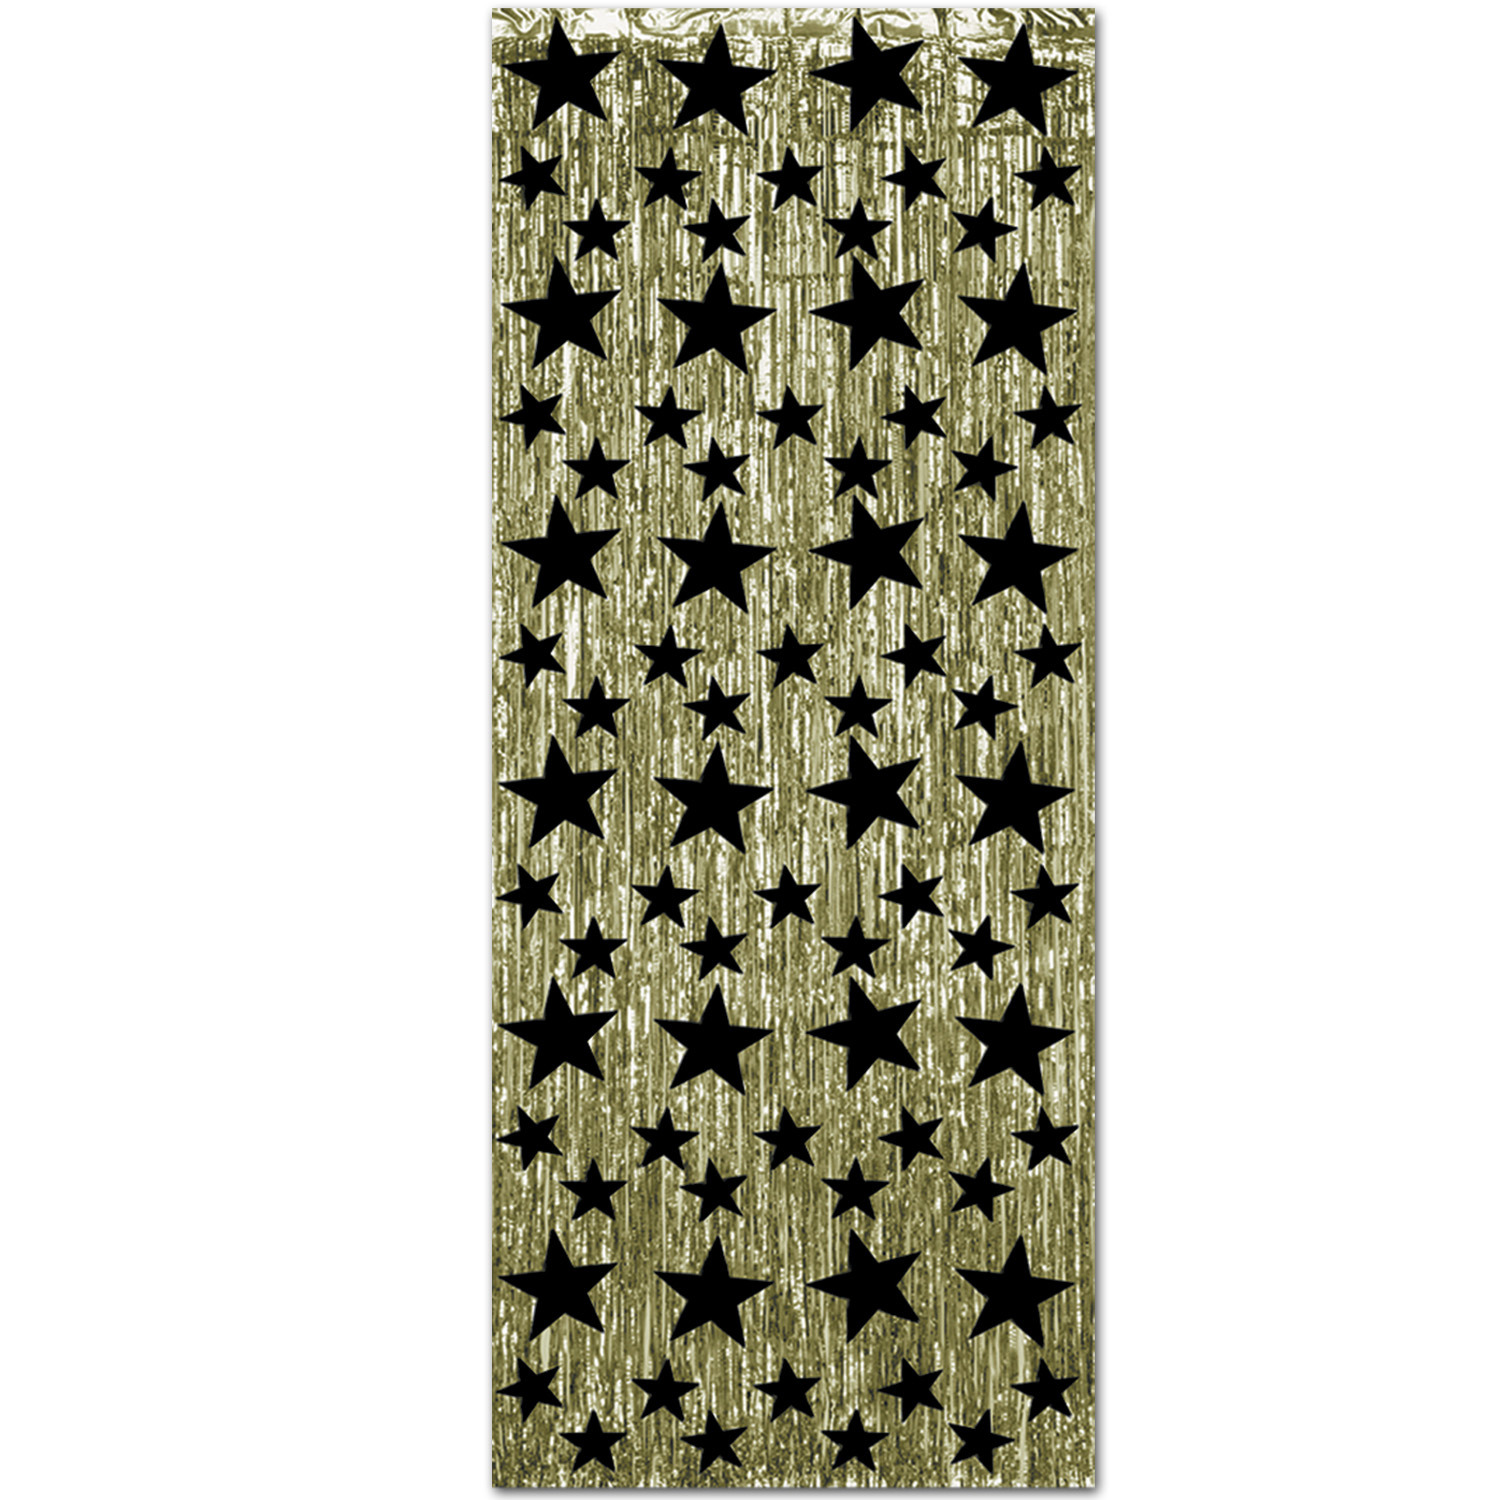 1-Ply Black and Gold Gleam N Curtain (Pack of 6) gold, black, star, metallic, curtain, new years eve, back drop, inexpensive, decoration, wholesale, bulk